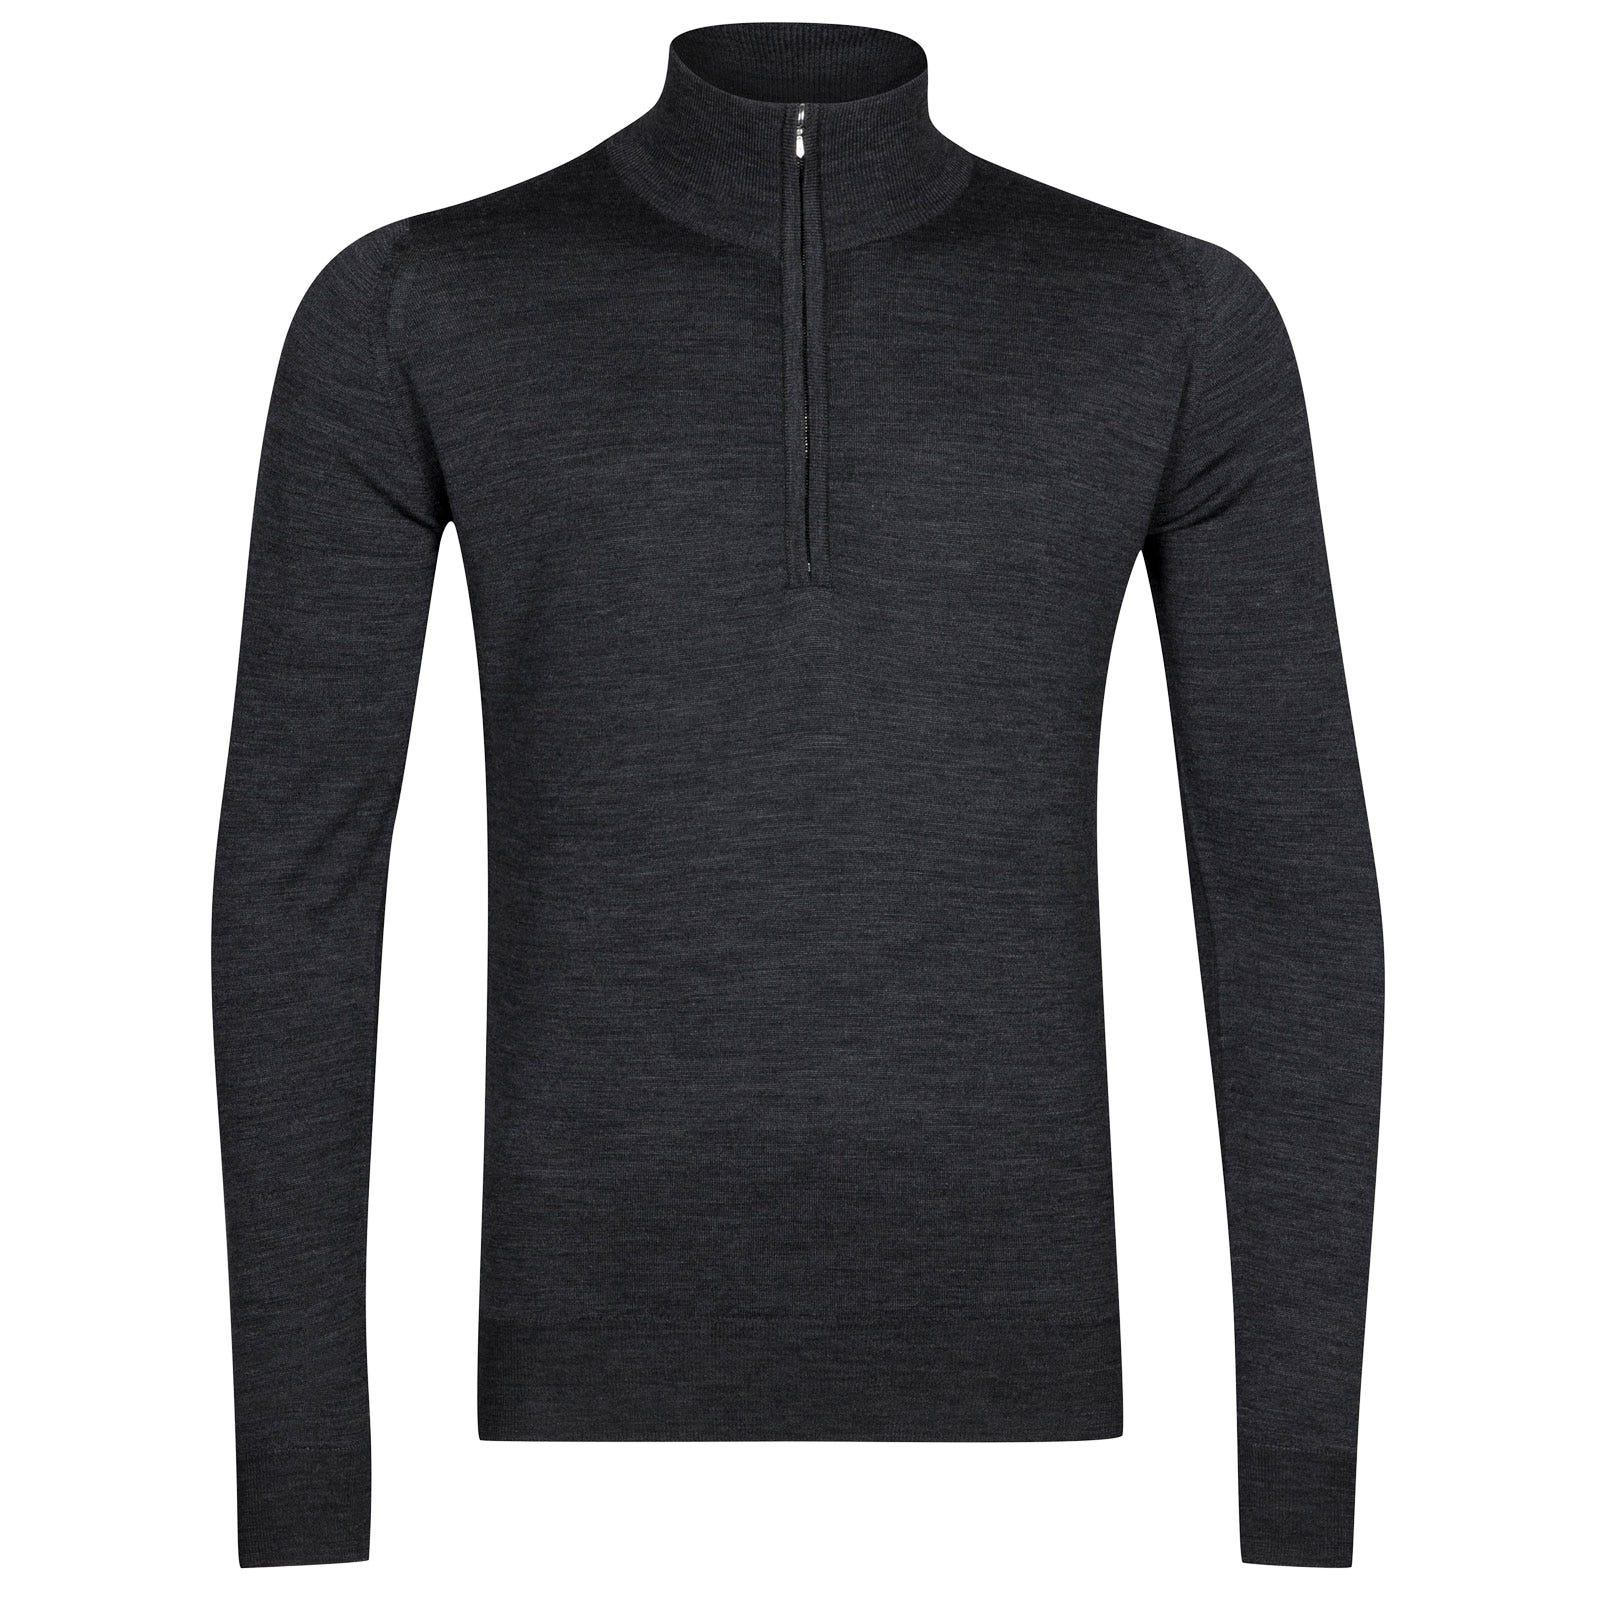 John Smedley Barrow Merino Wool Pullover in Charcoal-M